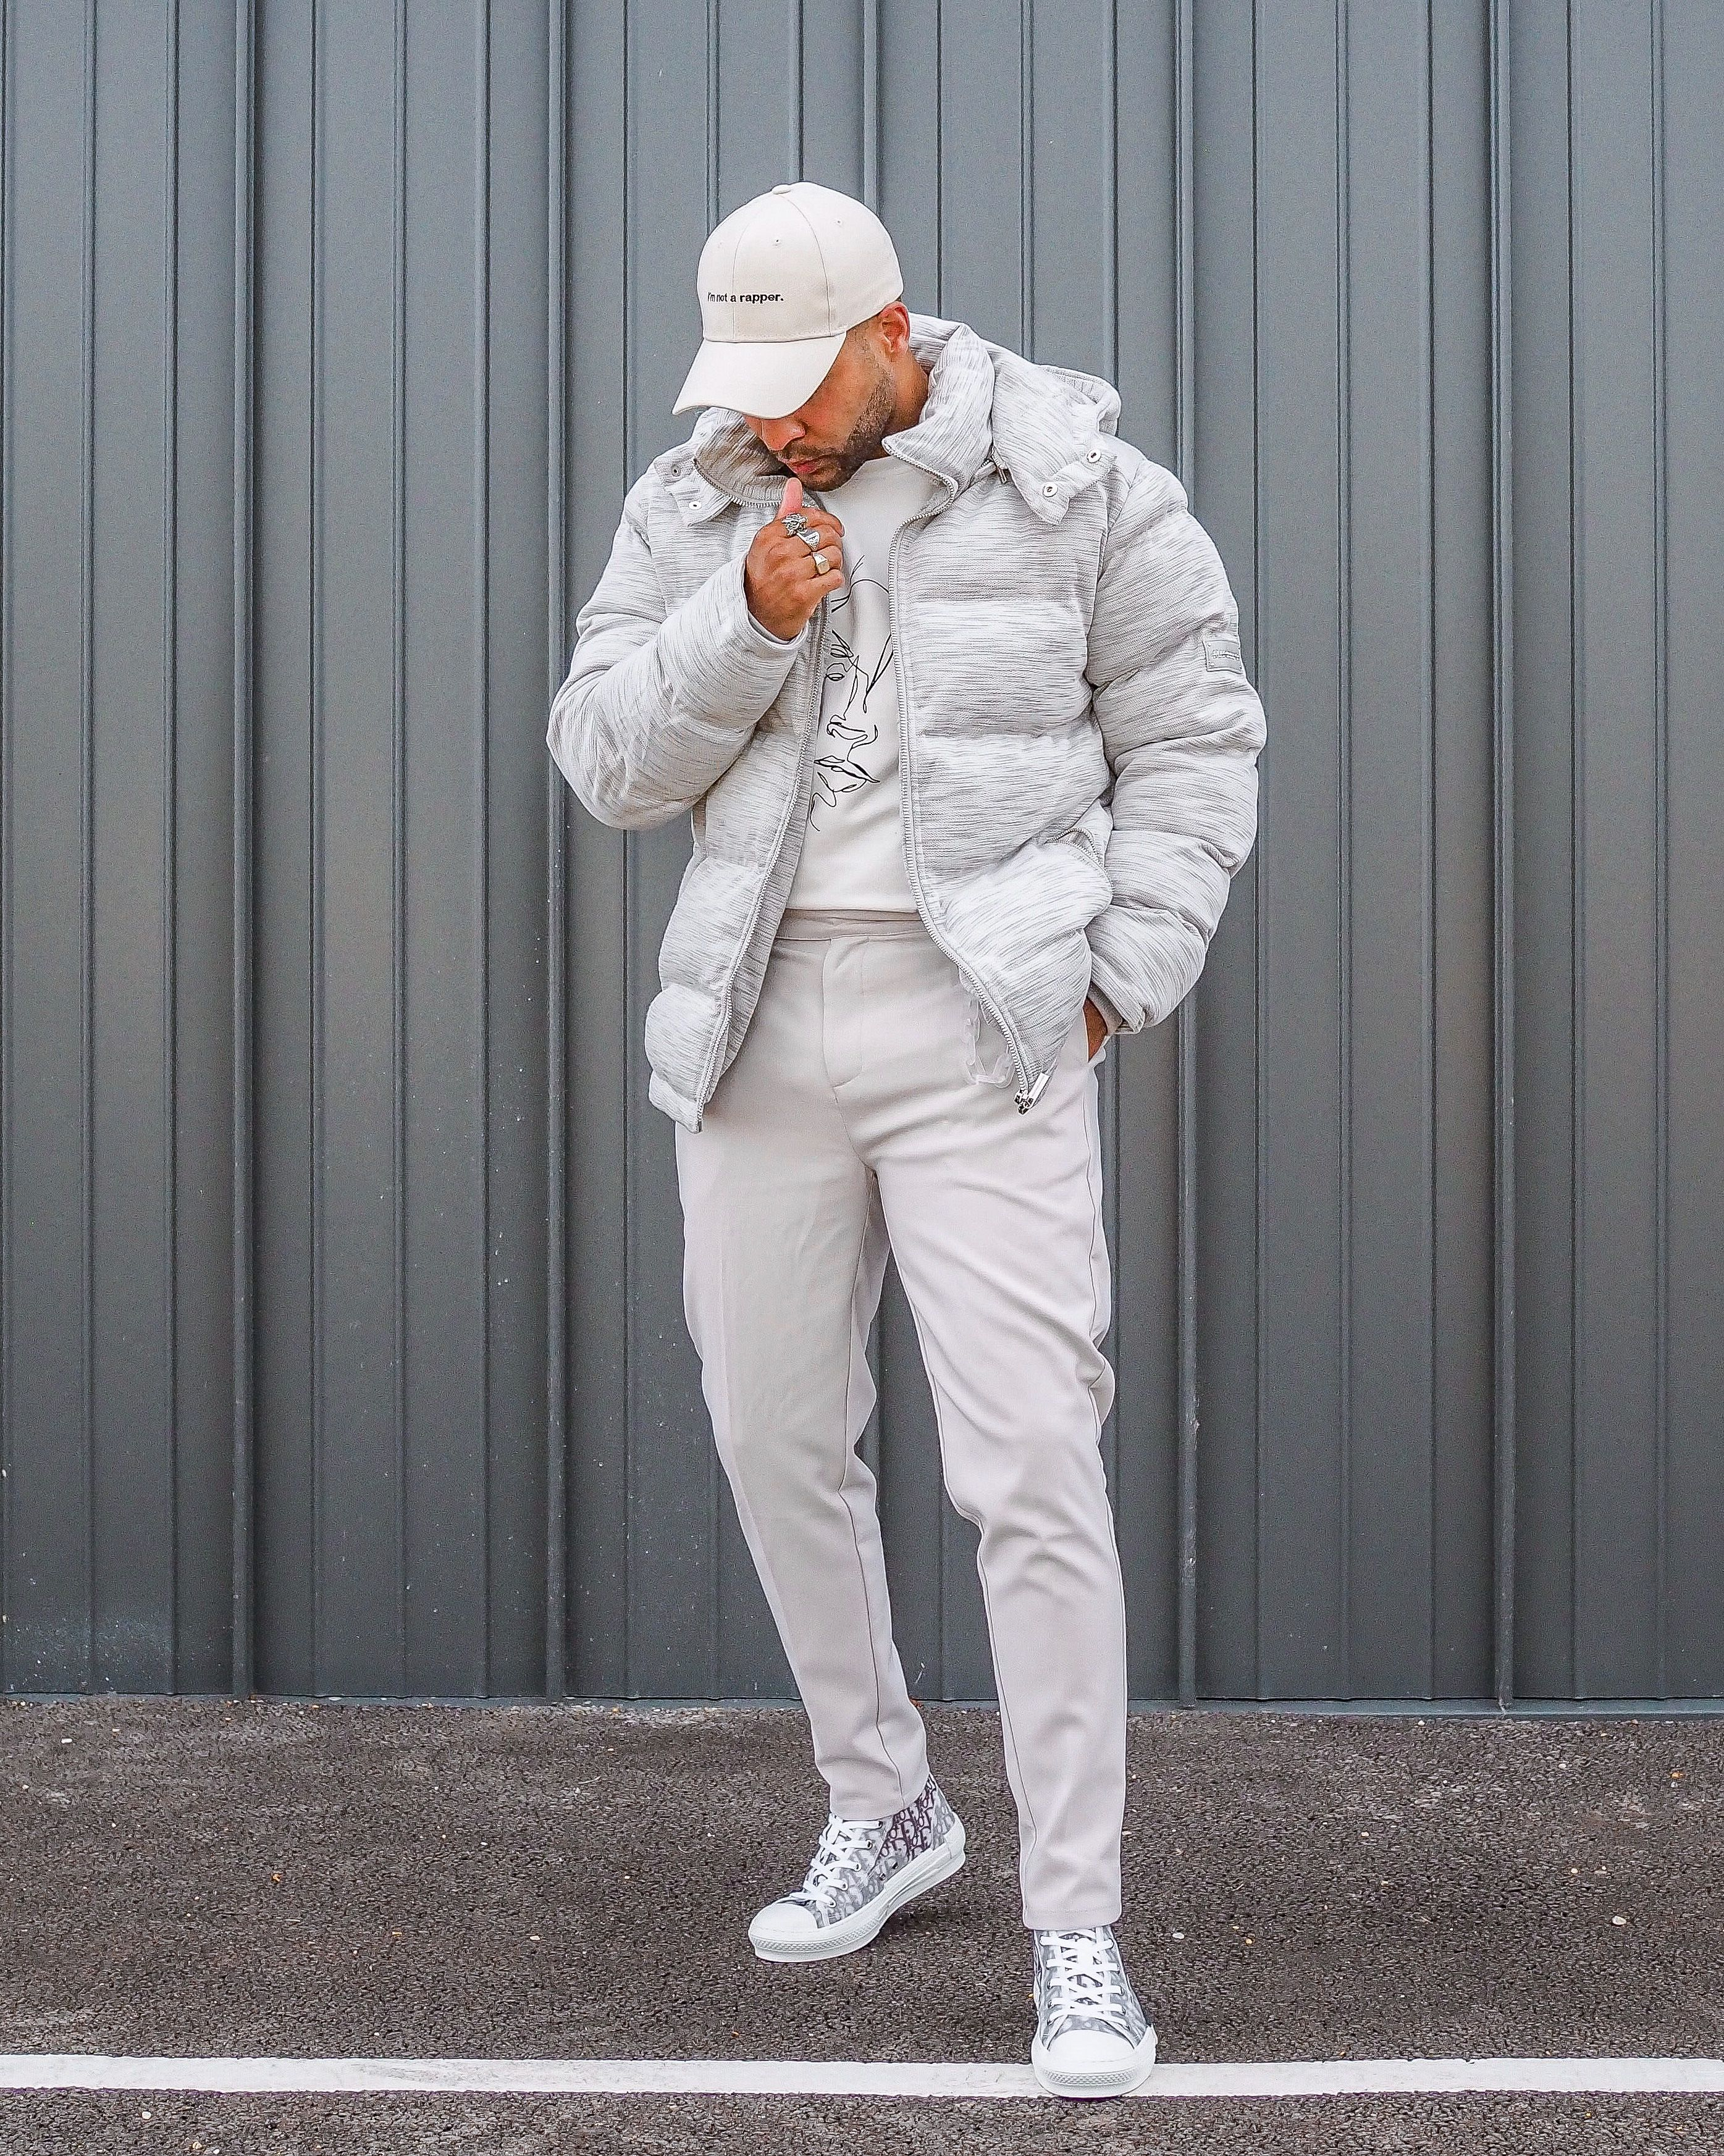 Textured Puffer Jacket Streetwear Men Outfits Winter Outfits Men Men Fashion Casual Outfits [ 3491 x 2791 Pixel ]